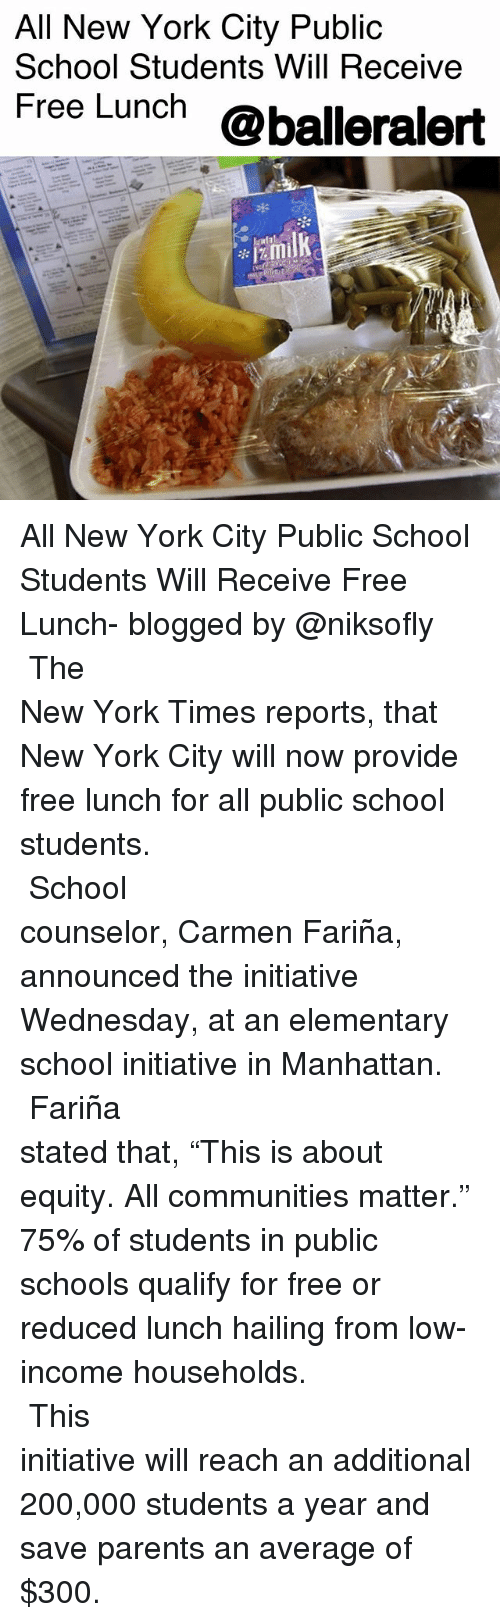 "lowed: All New York City Public  School Students Will Receive  Free Lunch @balleralert All New York City Public School Students Will Receive Free Lunch- blogged by @niksofly ⠀⠀⠀⠀⠀⠀⠀⠀⠀⠀⠀⠀⠀⠀⠀⠀⠀⠀⠀⠀⠀⠀⠀⠀⠀⠀⠀⠀⠀⠀⠀⠀⠀⠀⠀⠀ The New York Times reports, that New York City will now provide free lunch for all public school students. ⠀⠀⠀⠀⠀⠀⠀⠀⠀⠀⠀⠀⠀⠀⠀⠀⠀⠀⠀⠀⠀⠀⠀⠀⠀⠀⠀⠀⠀⠀⠀⠀⠀⠀⠀⠀ School counselor, Carmen Fariña, announced the initiative Wednesday, at an elementary school initiative in Manhattan. ⠀⠀⠀⠀⠀⠀⠀⠀⠀⠀⠀⠀⠀⠀⠀⠀⠀⠀⠀⠀⠀⠀⠀⠀⠀⠀⠀⠀⠀⠀⠀⠀⠀⠀⠀⠀ Fariña stated that, ""This is about equity. All communities matter."" 75% of students in public schools qualify for free or reduced lunch hailing from low-income households. ⠀⠀⠀⠀⠀⠀⠀⠀⠀⠀⠀⠀⠀⠀⠀⠀⠀⠀⠀⠀⠀⠀⠀⠀⠀⠀⠀⠀⠀⠀⠀⠀⠀⠀⠀⠀ This initiative will reach an additional 200,000 students a year and save parents an average of $300."